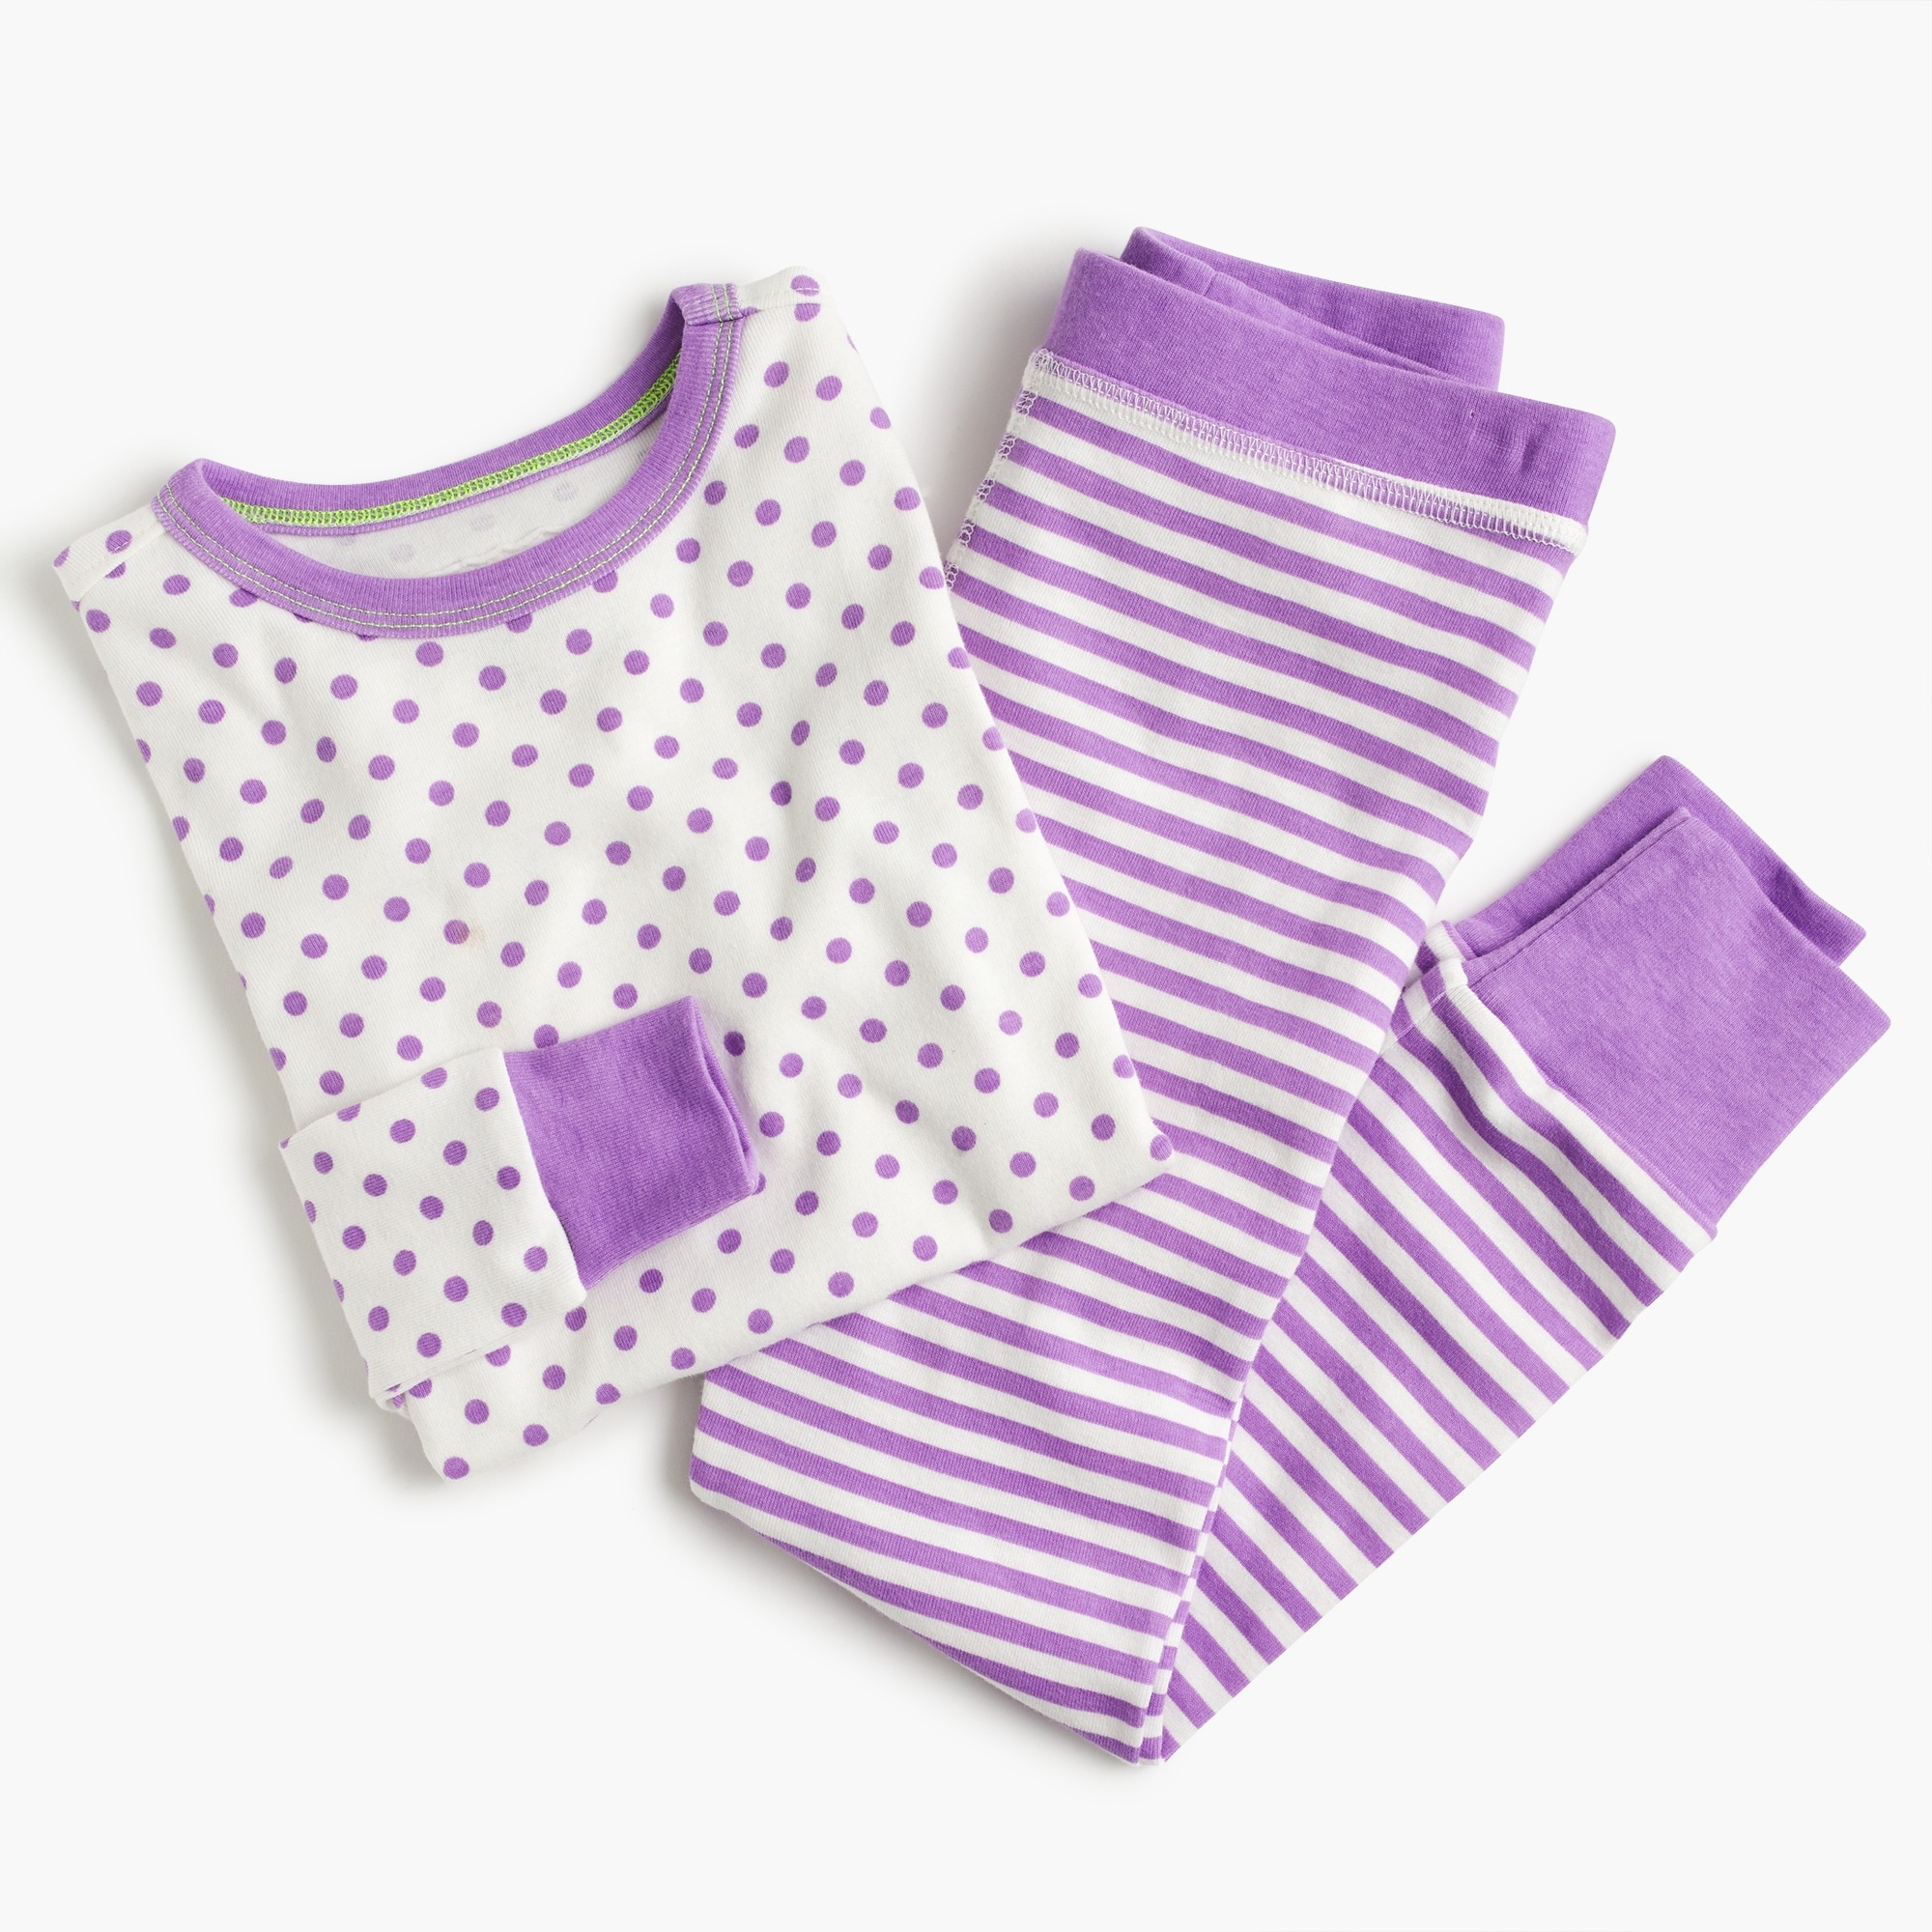 girls Girls' pajama set in dots and stripes